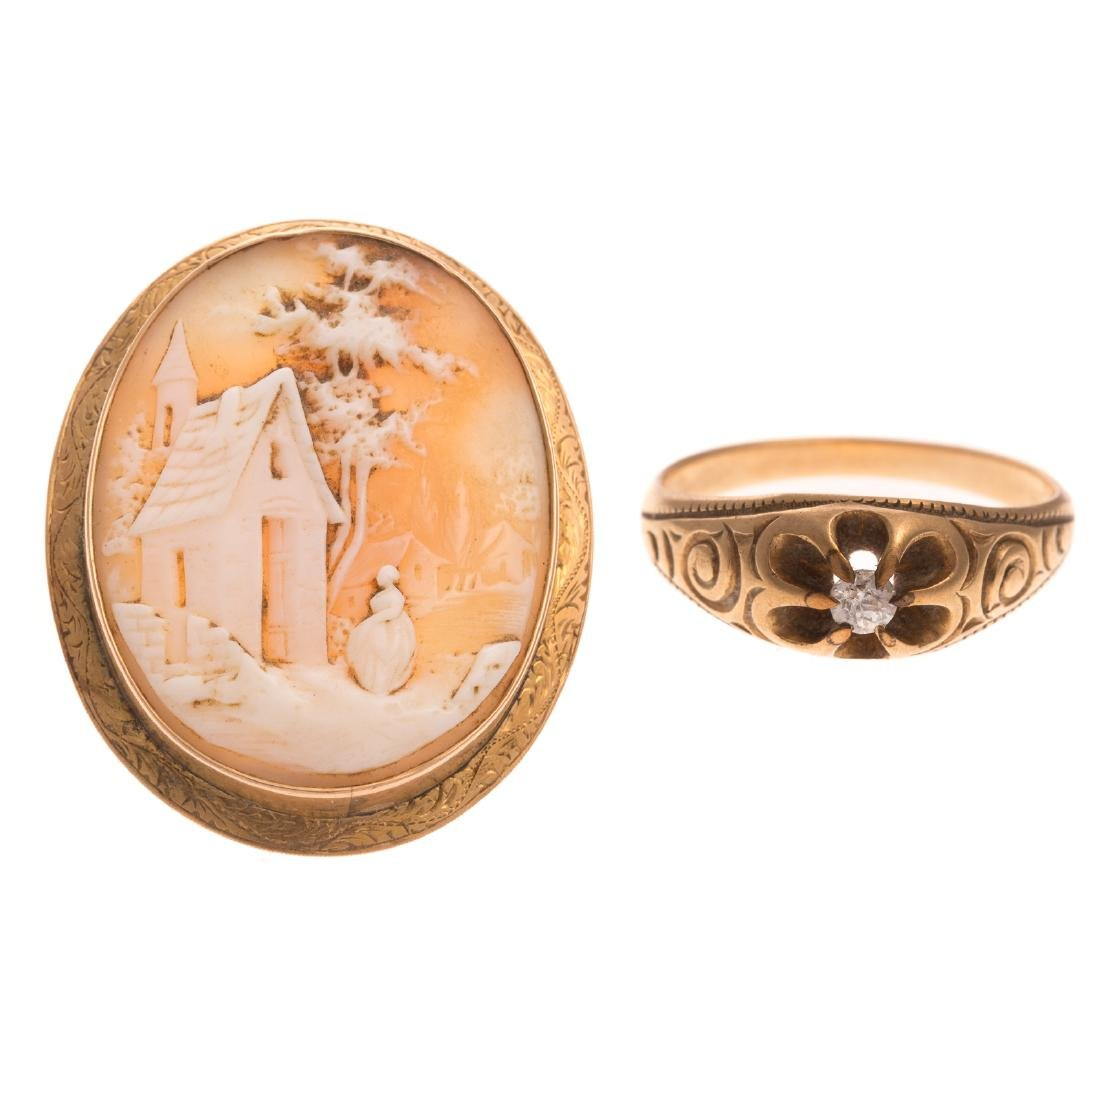 A Victorian Diamond Ring & Cameo in 14K